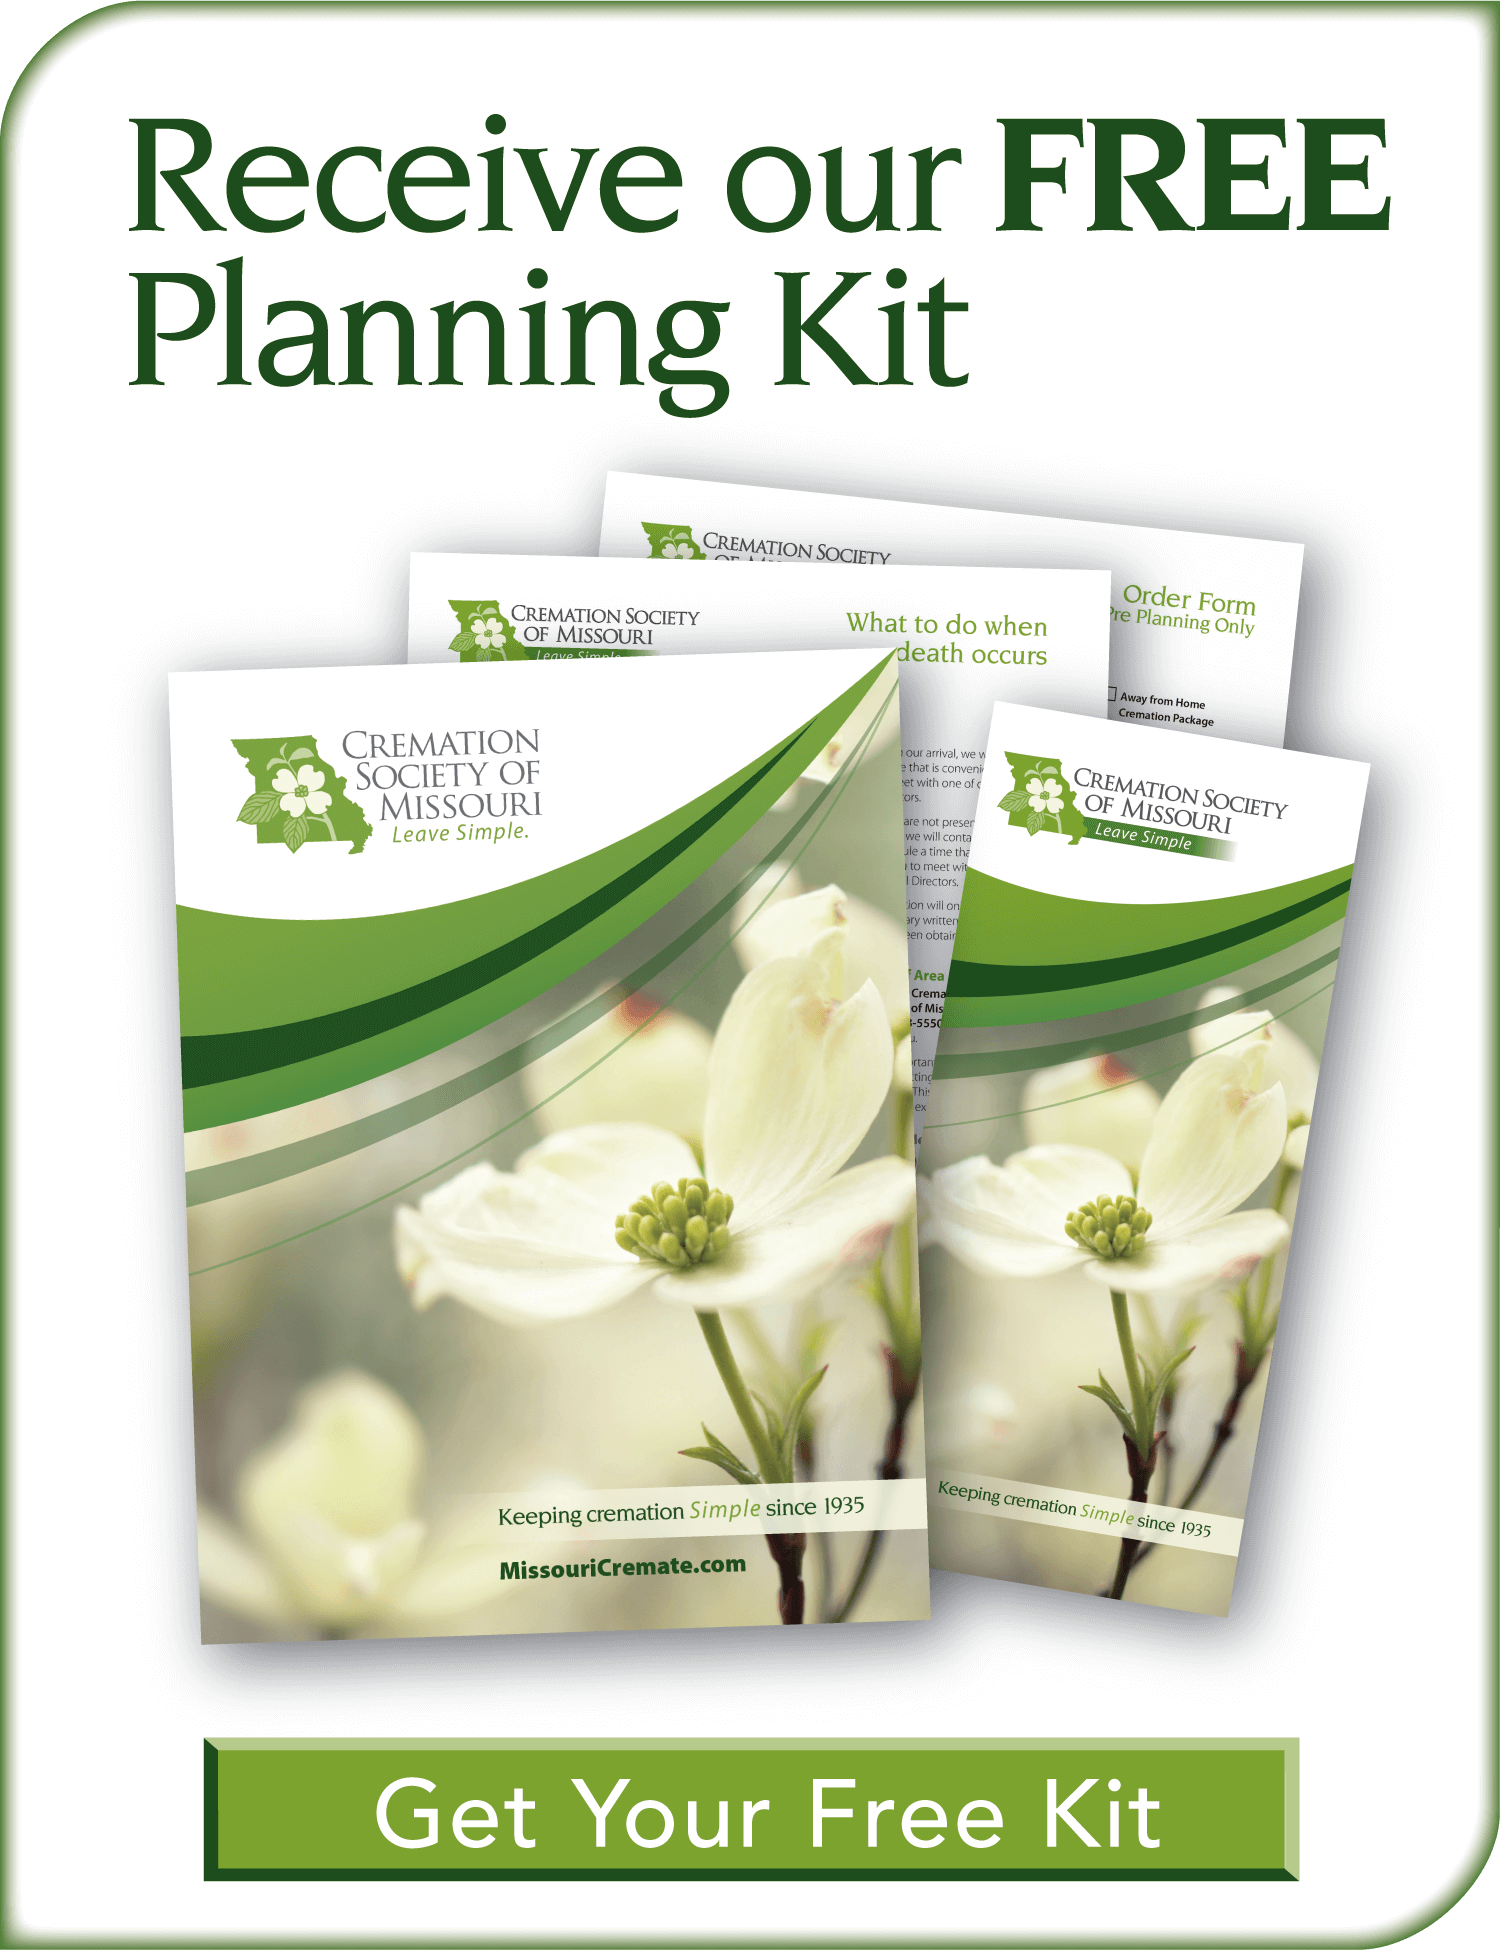 Get a FREE Planning Kit